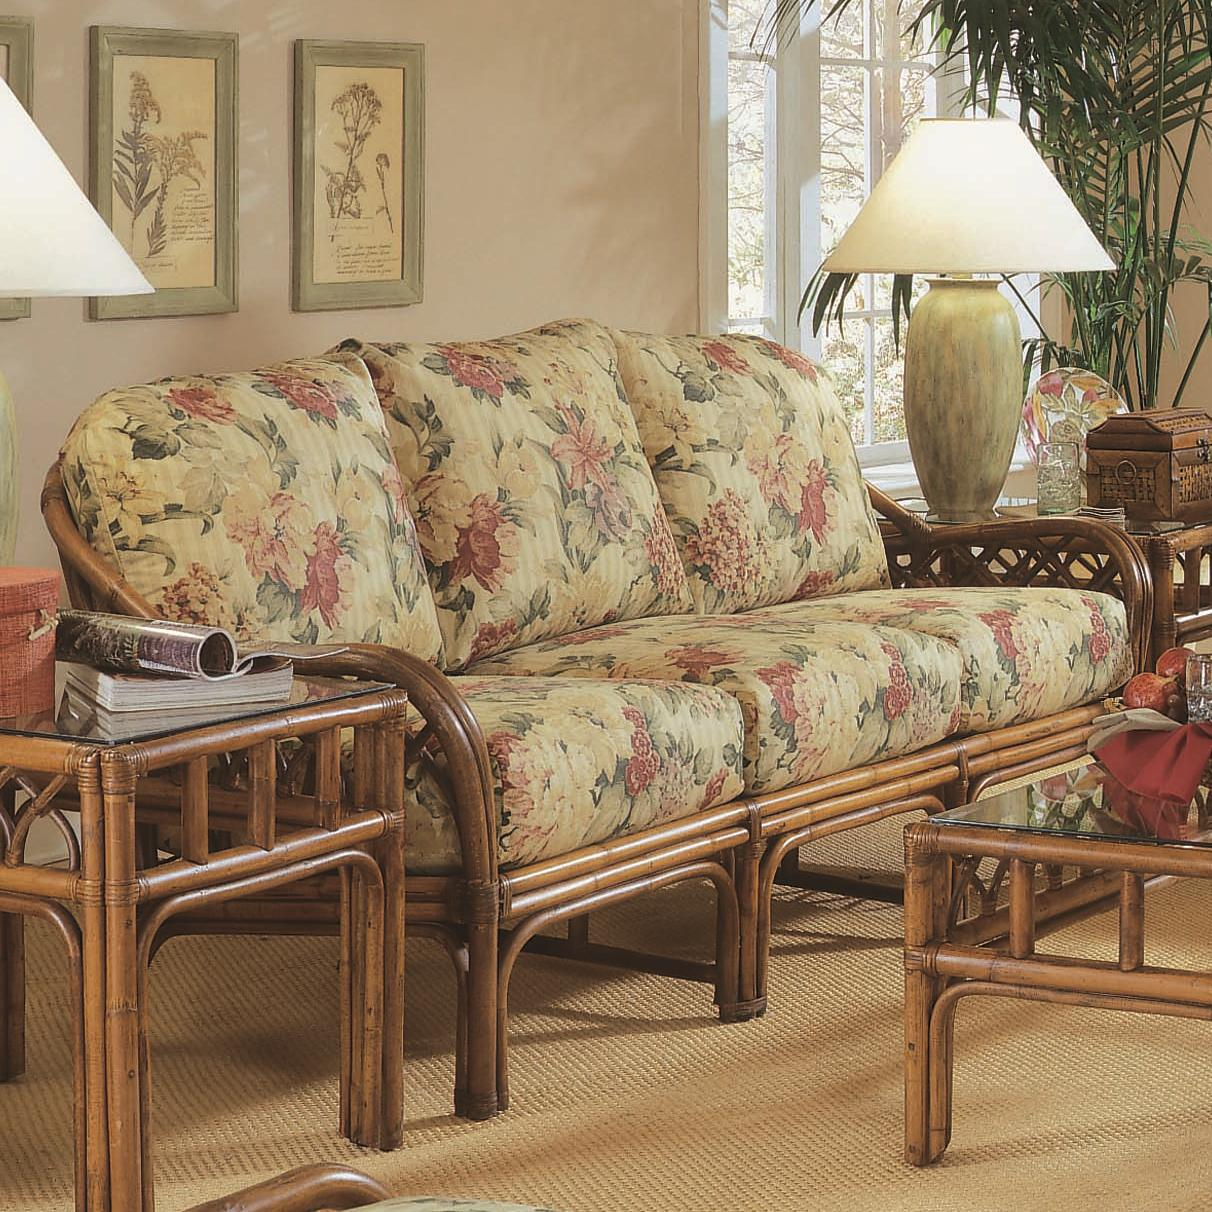 braxton sofa table power reclining not working culler edgewater 914 011 tropical rattan with